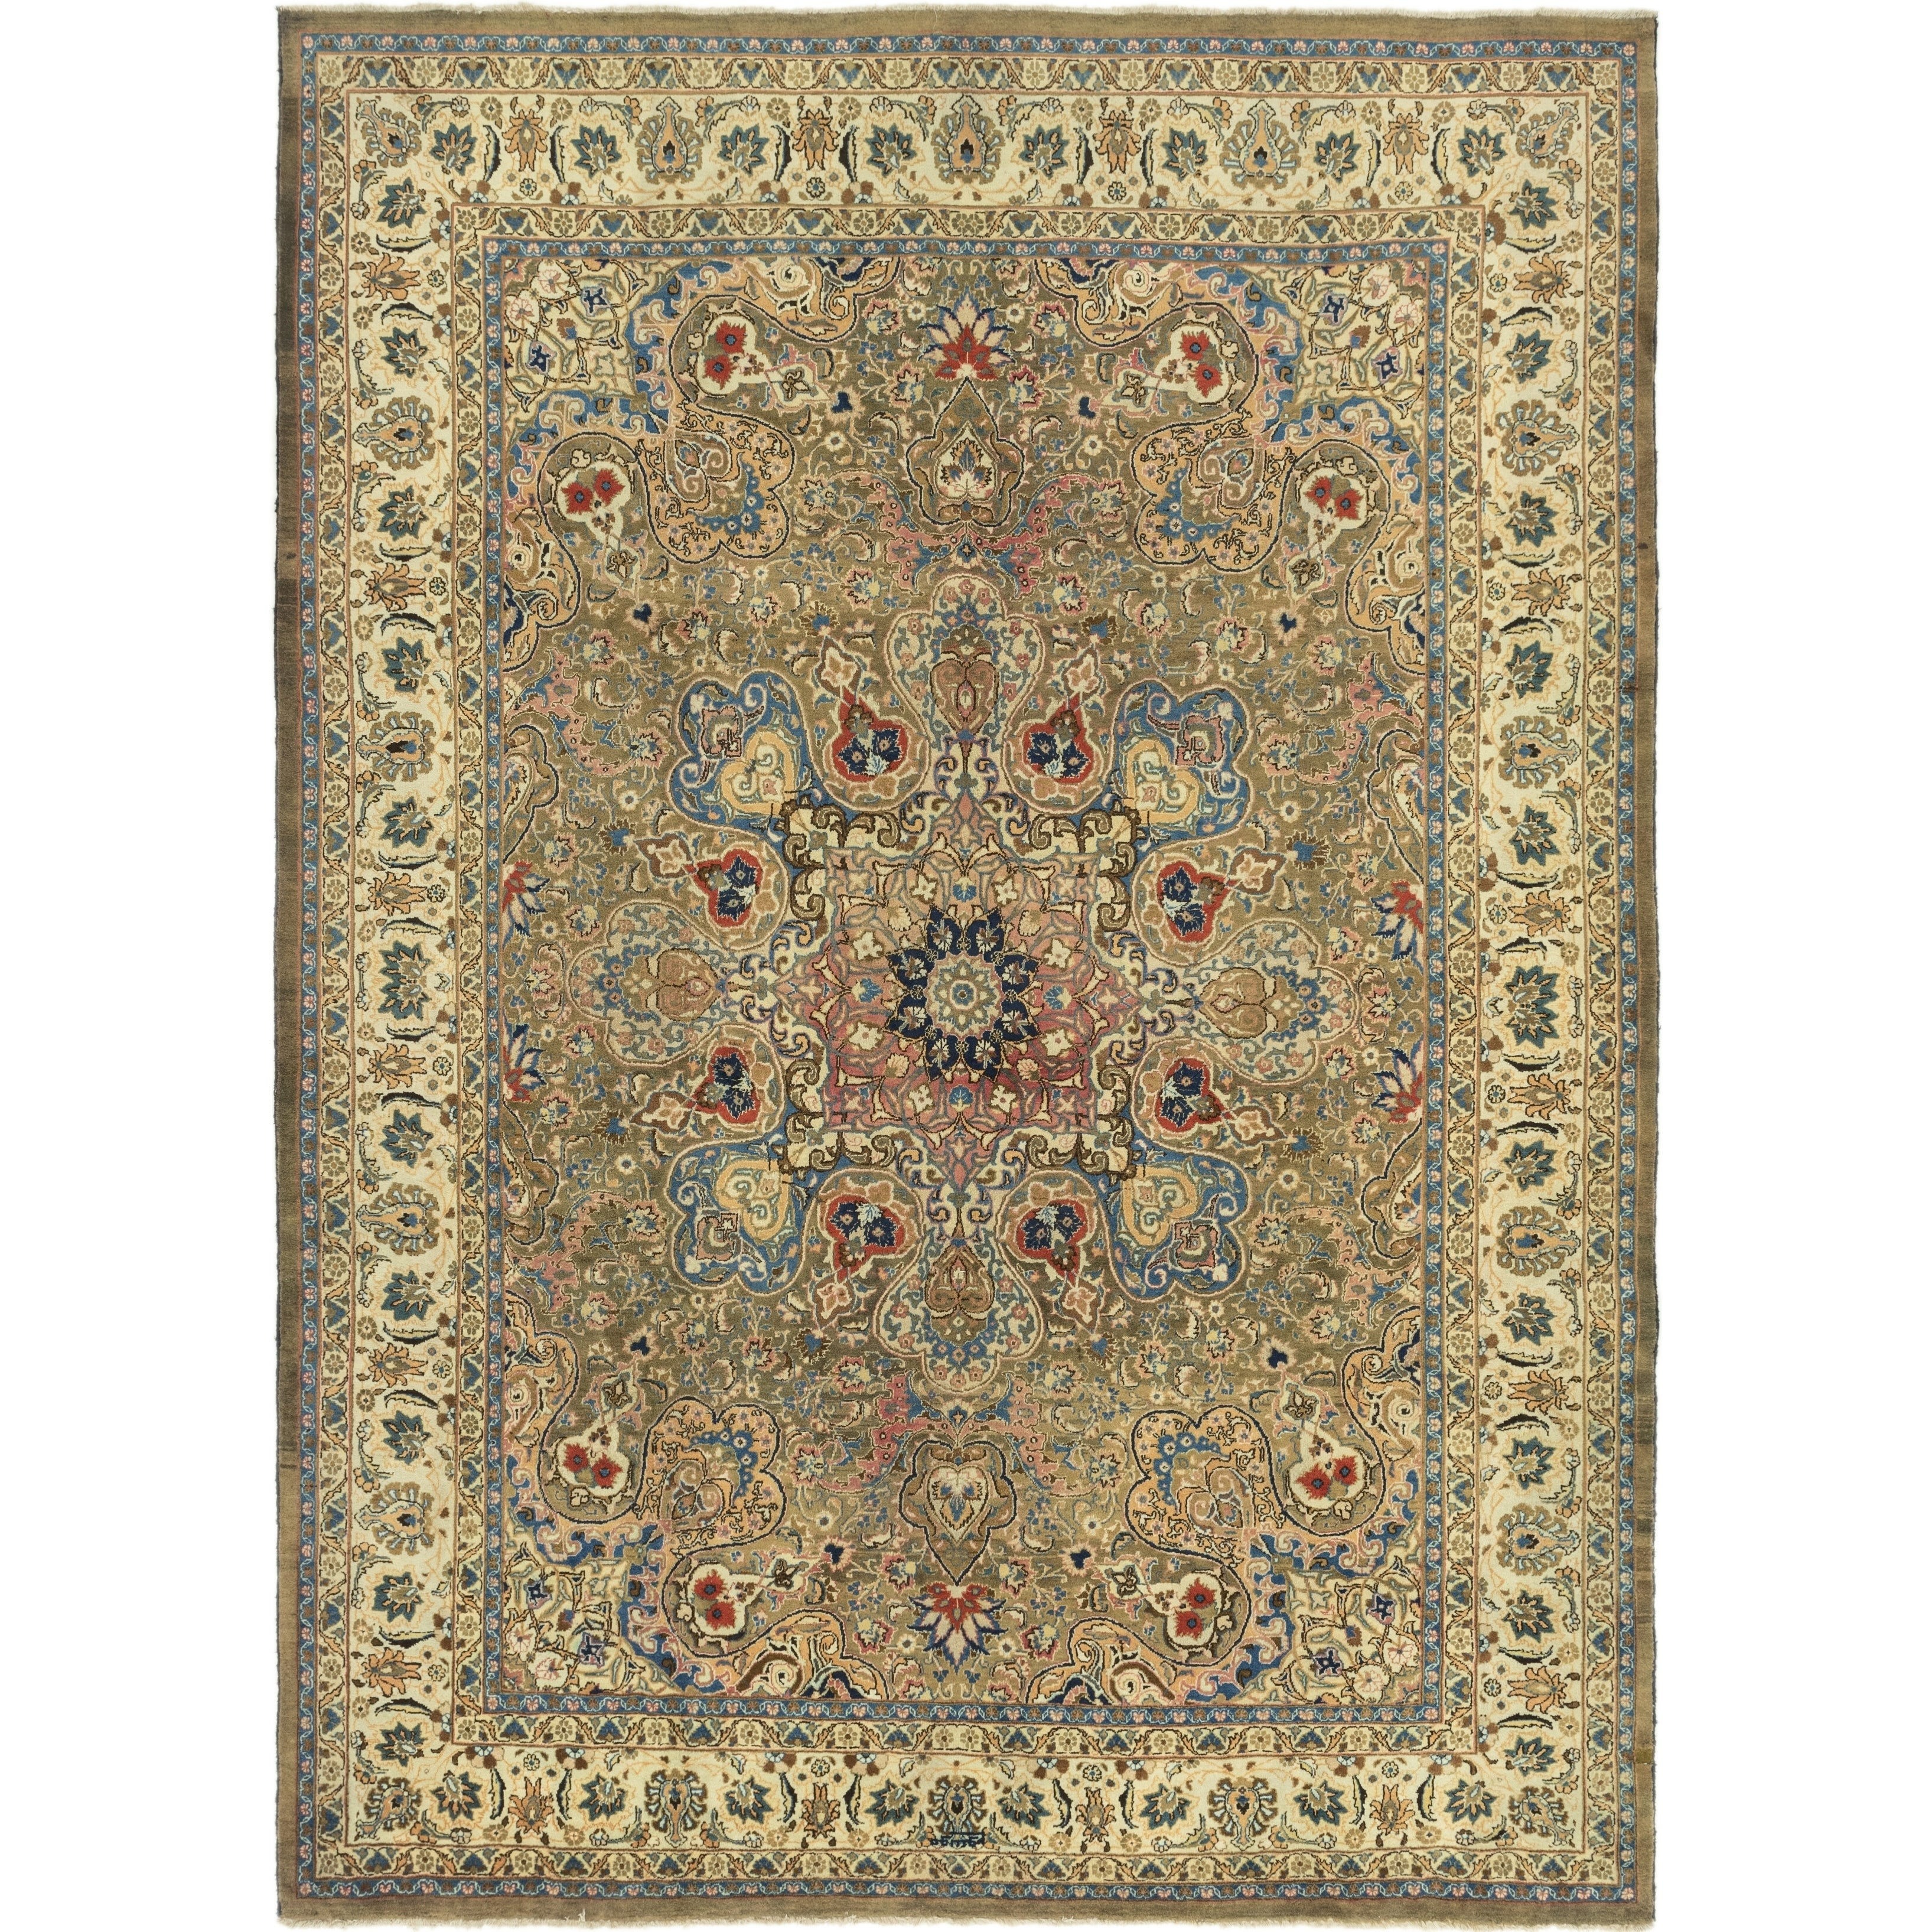 Hand Knotted Kashmar Semi Antique Wool Area Rug - 10 x 13 5 (Olive - 10 x 13 5)